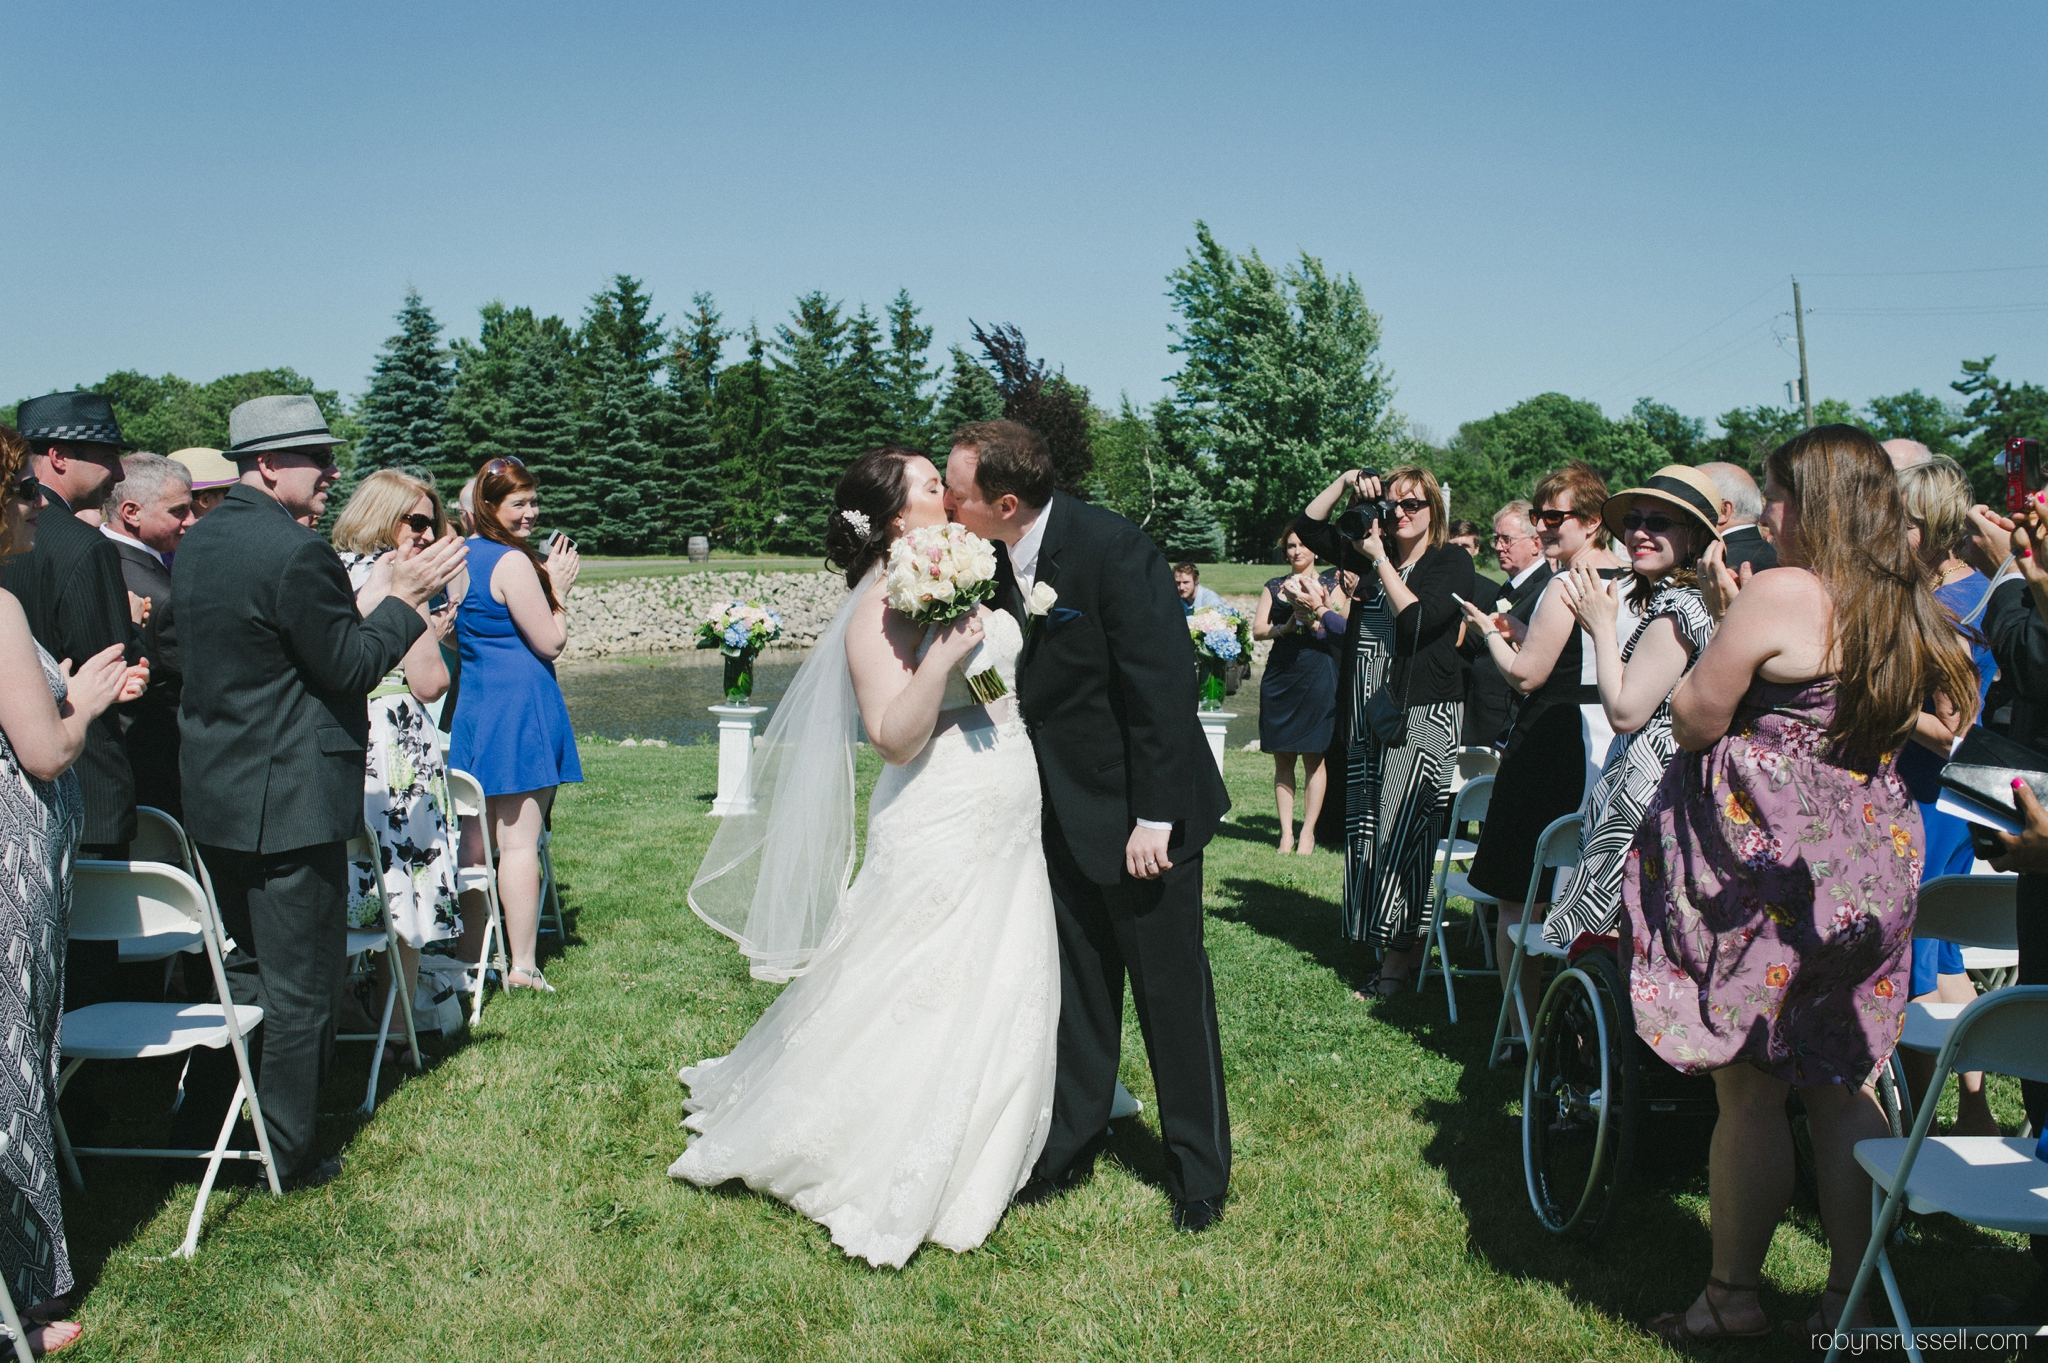 22-bride-and-groom-kiss-recessional.jpg